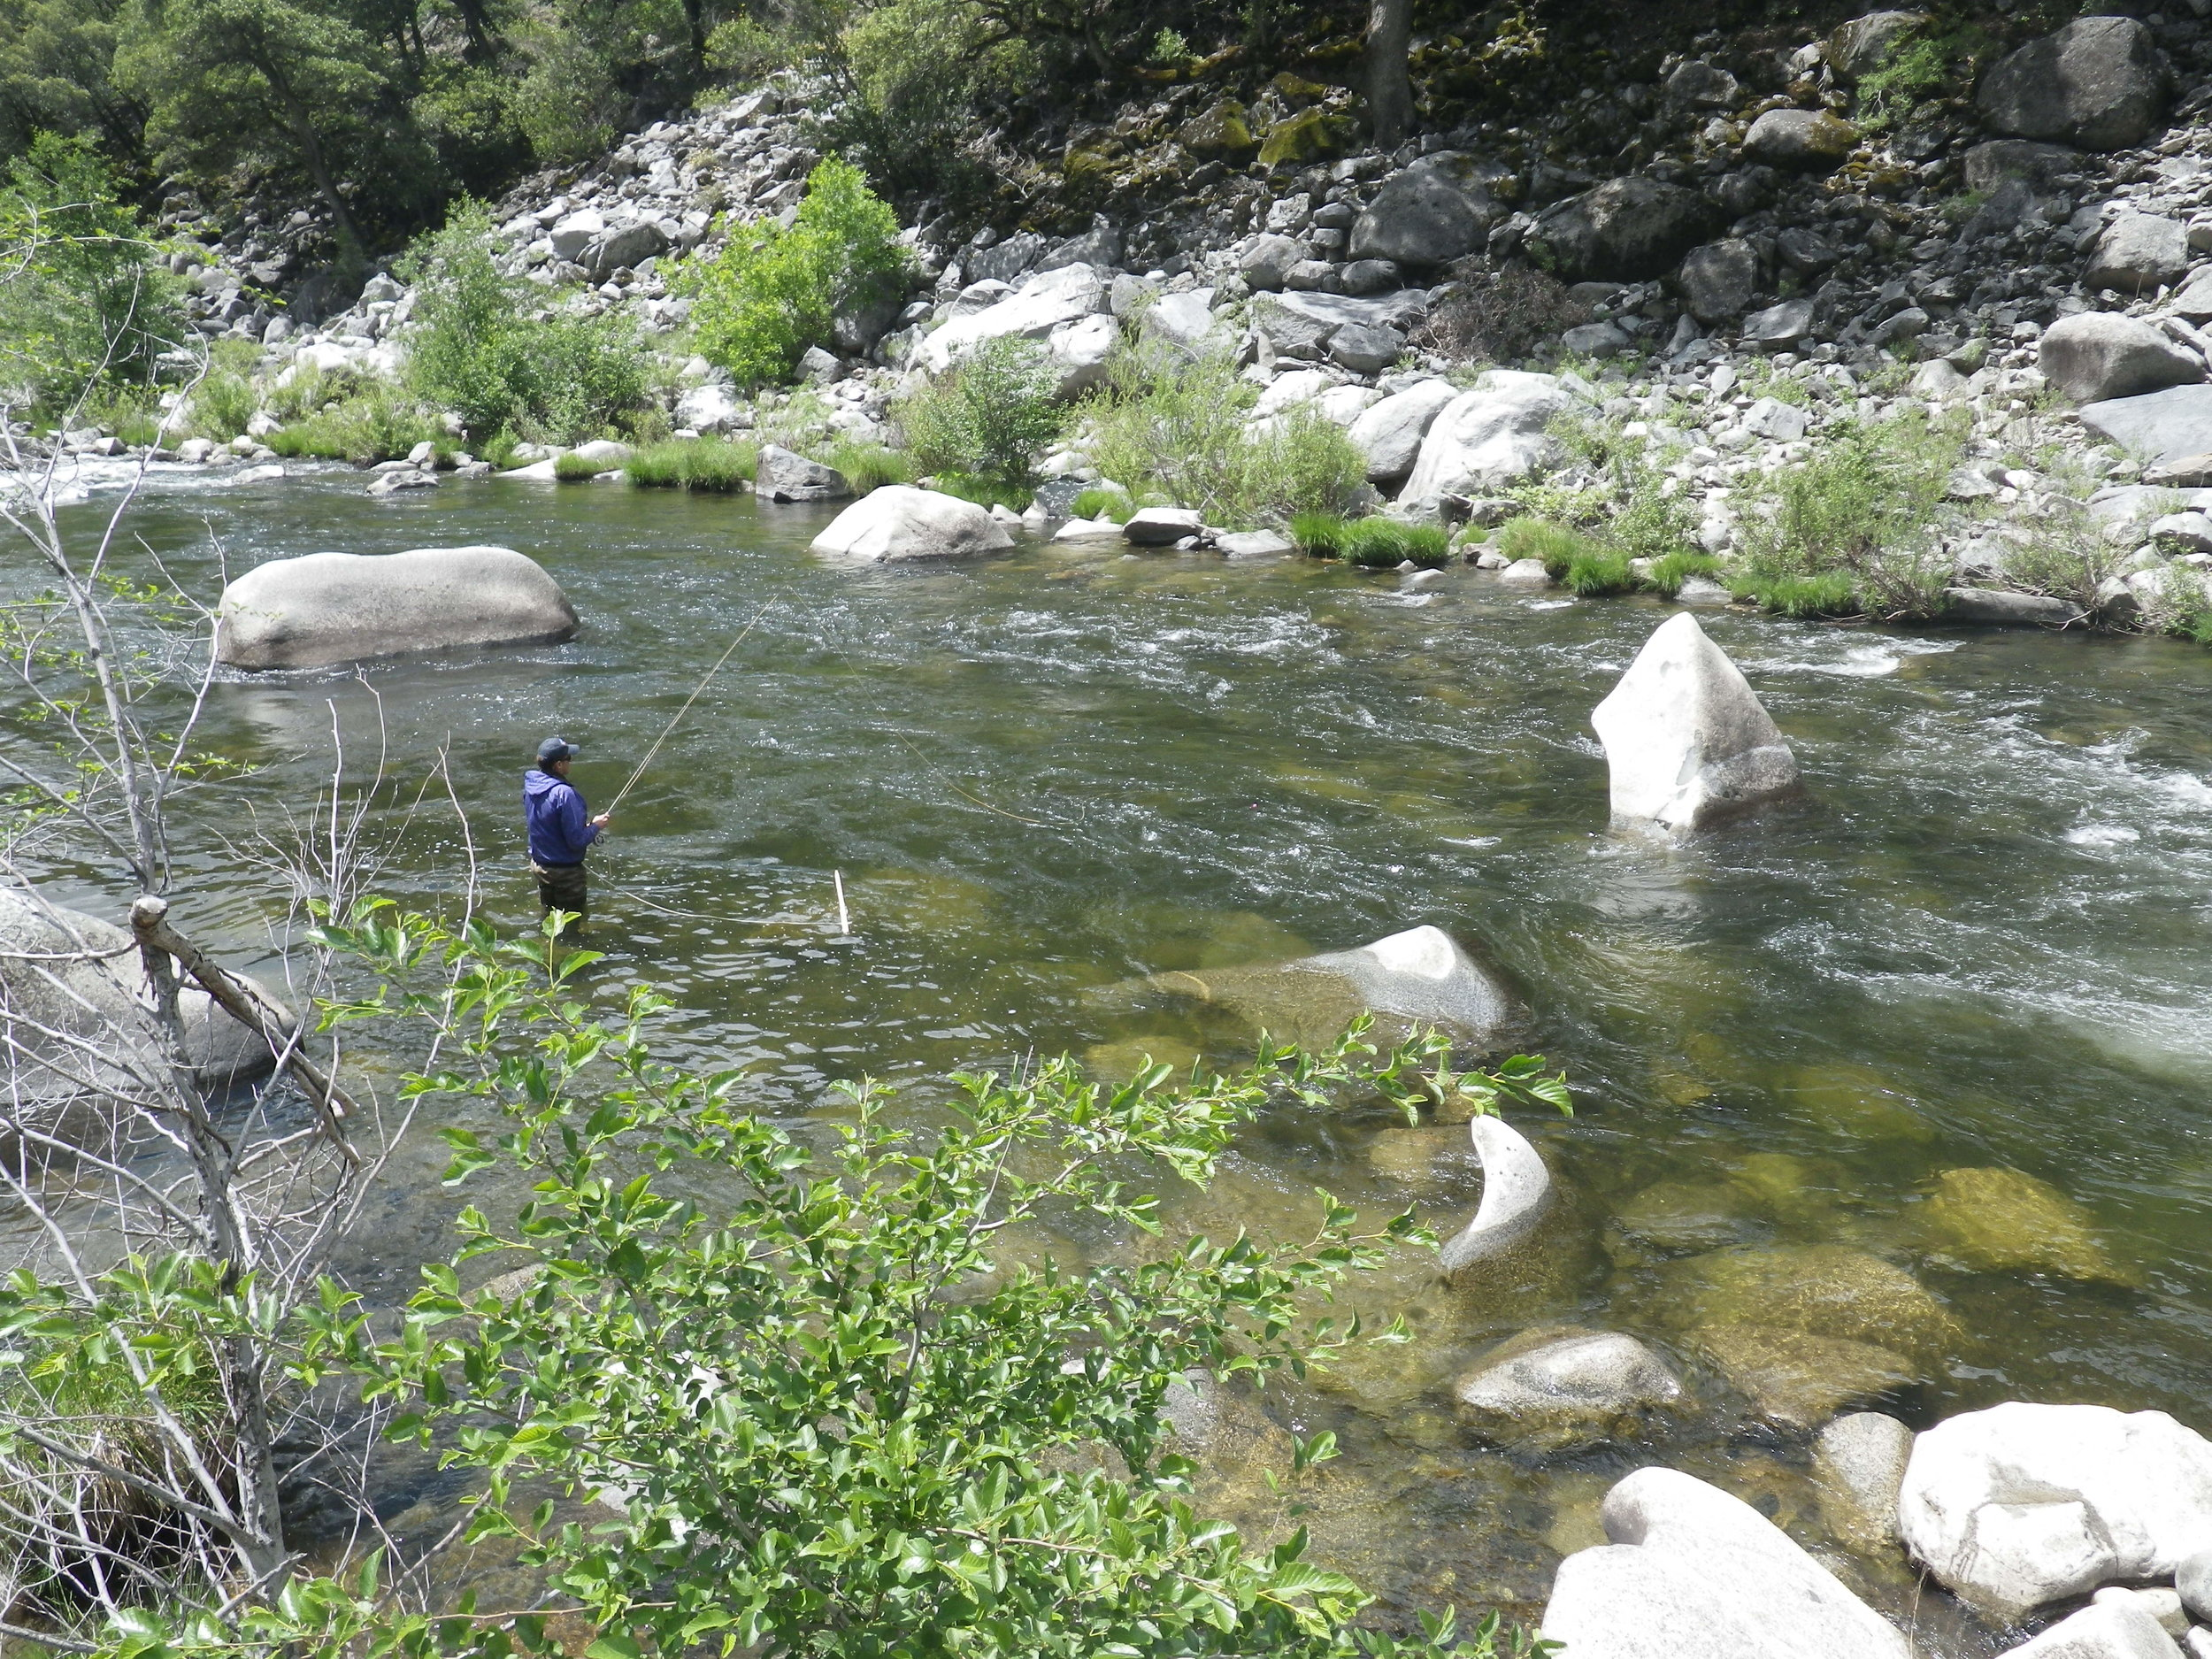 The North Fork Feather River